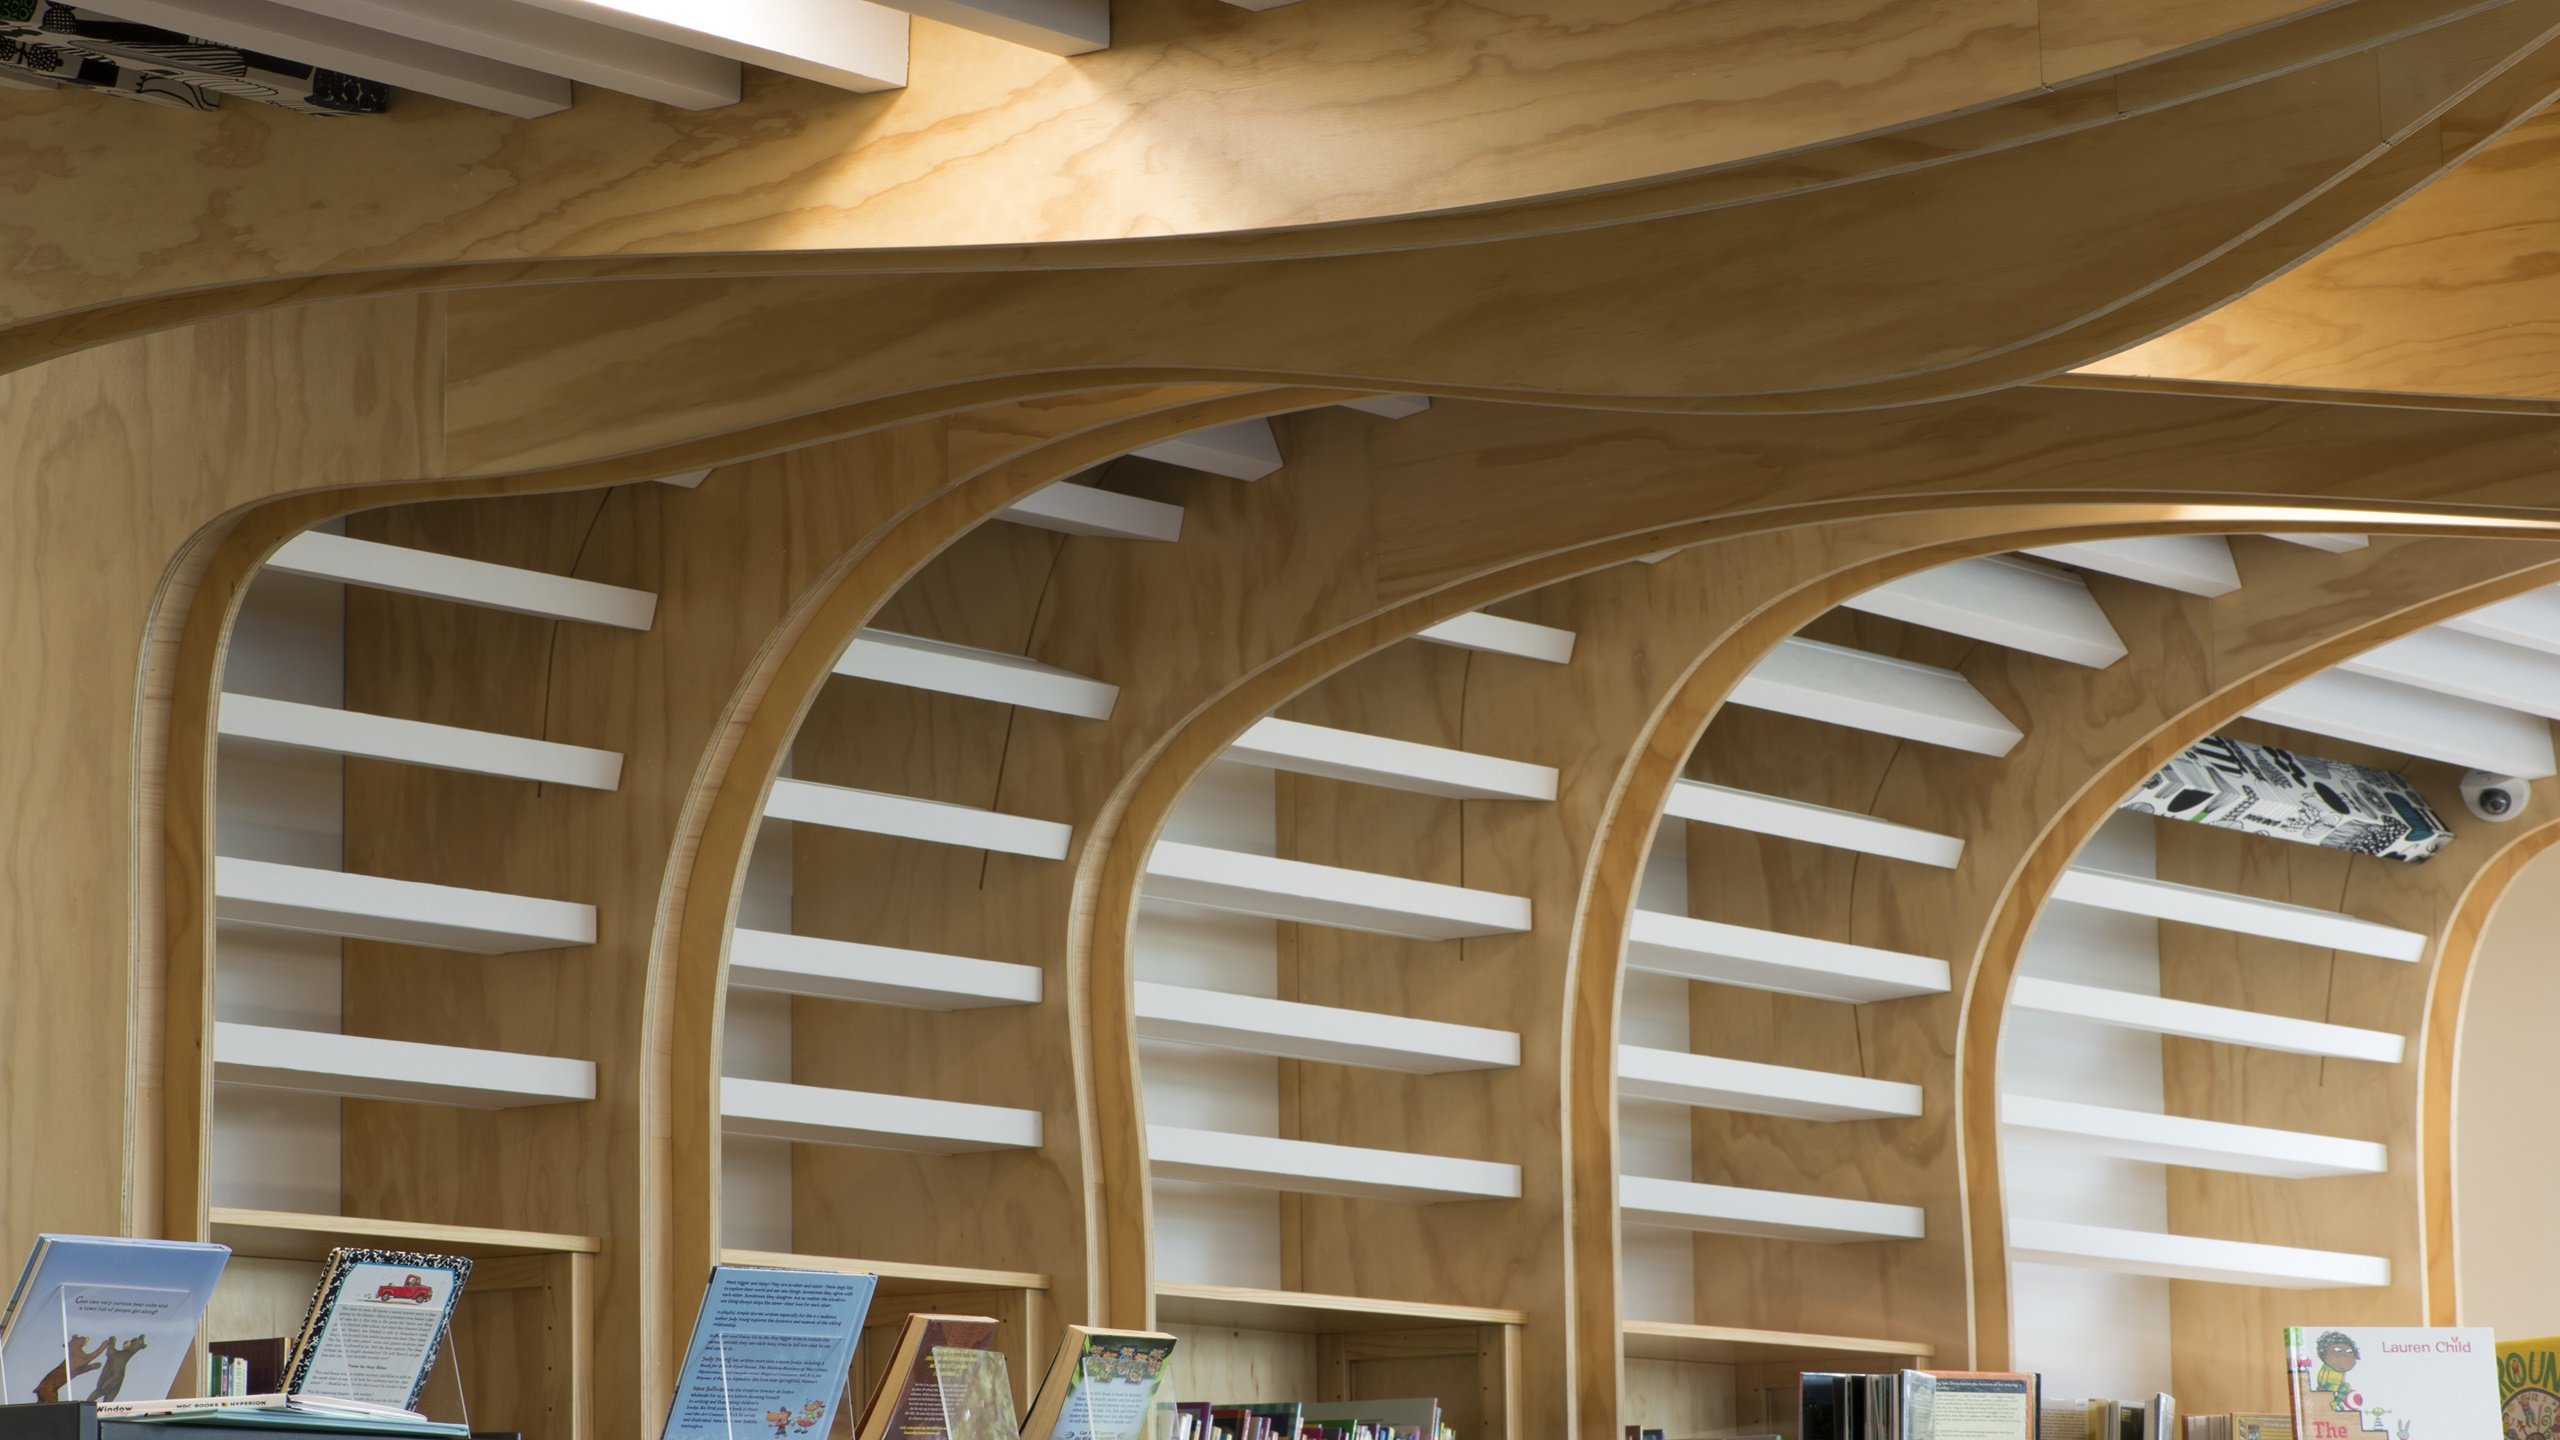 Devonport Library showing white baffle beams installed onto an undulating ceiling feature